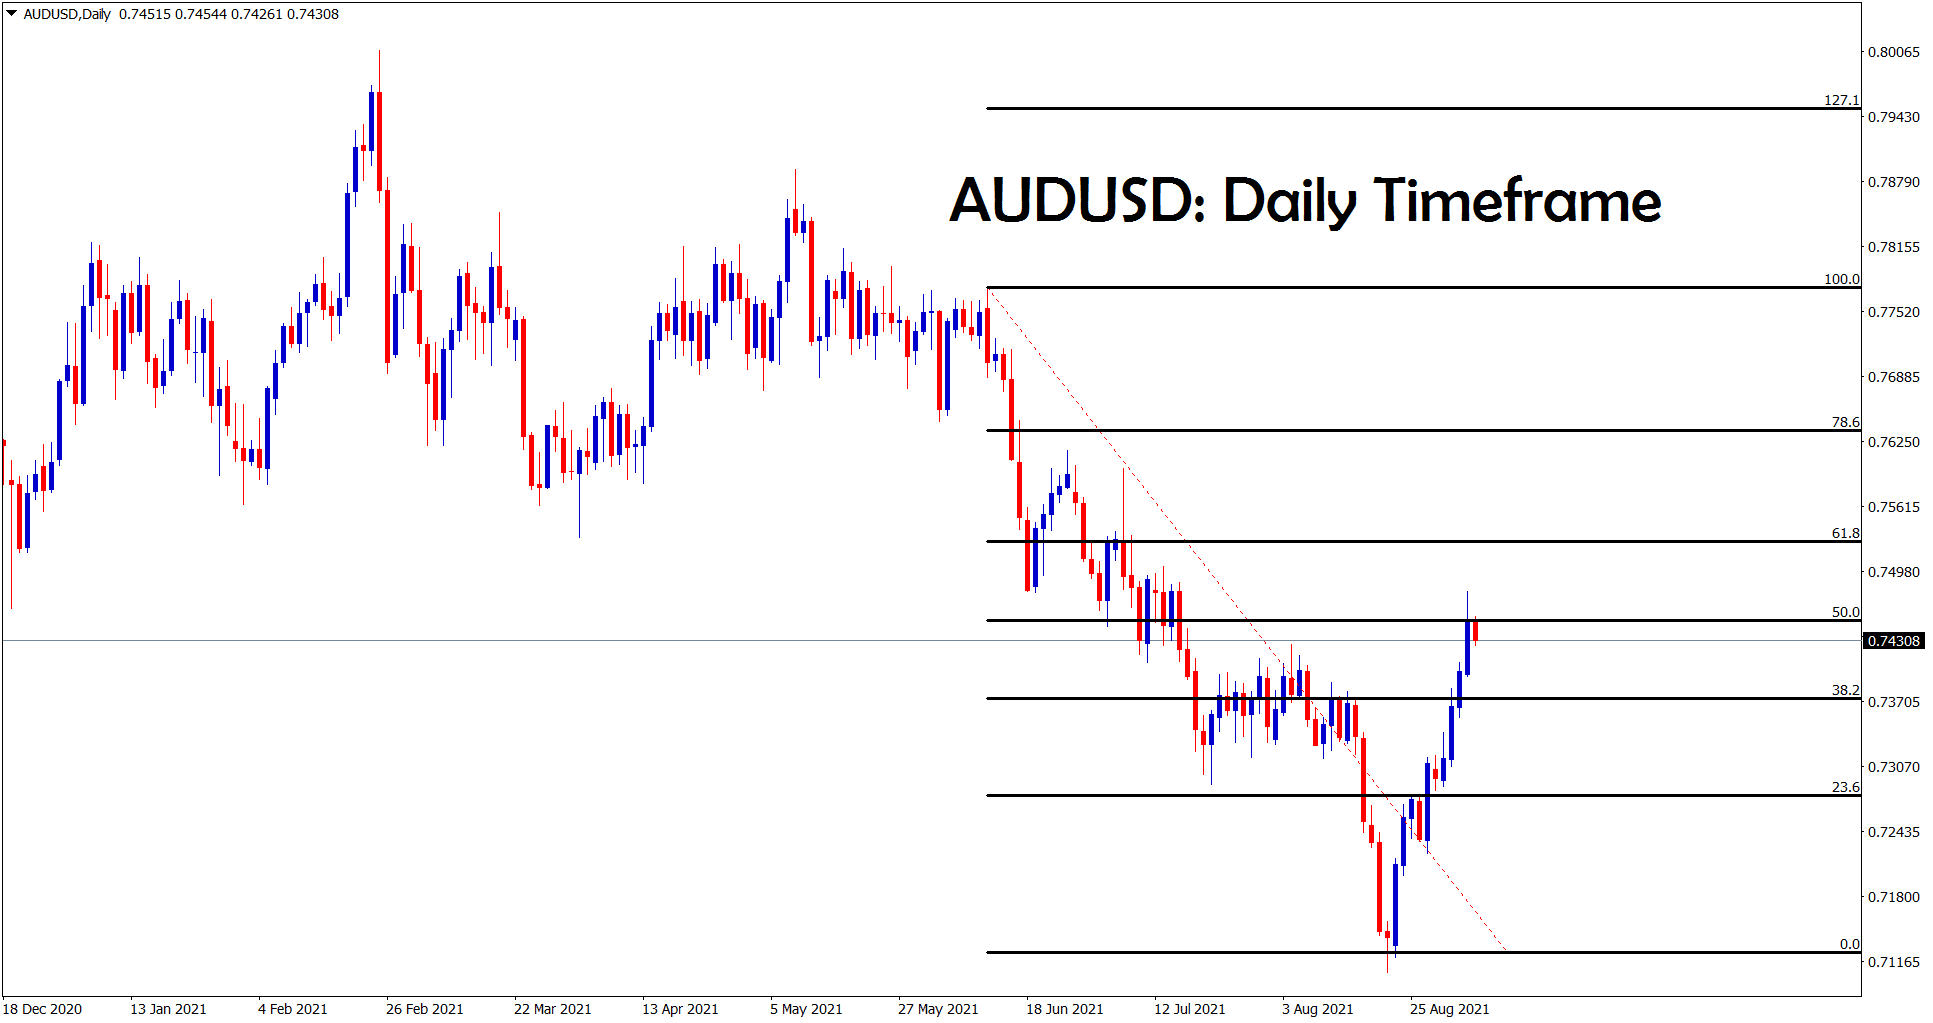 AUDUSD is trying to make a correction after 50 retracement